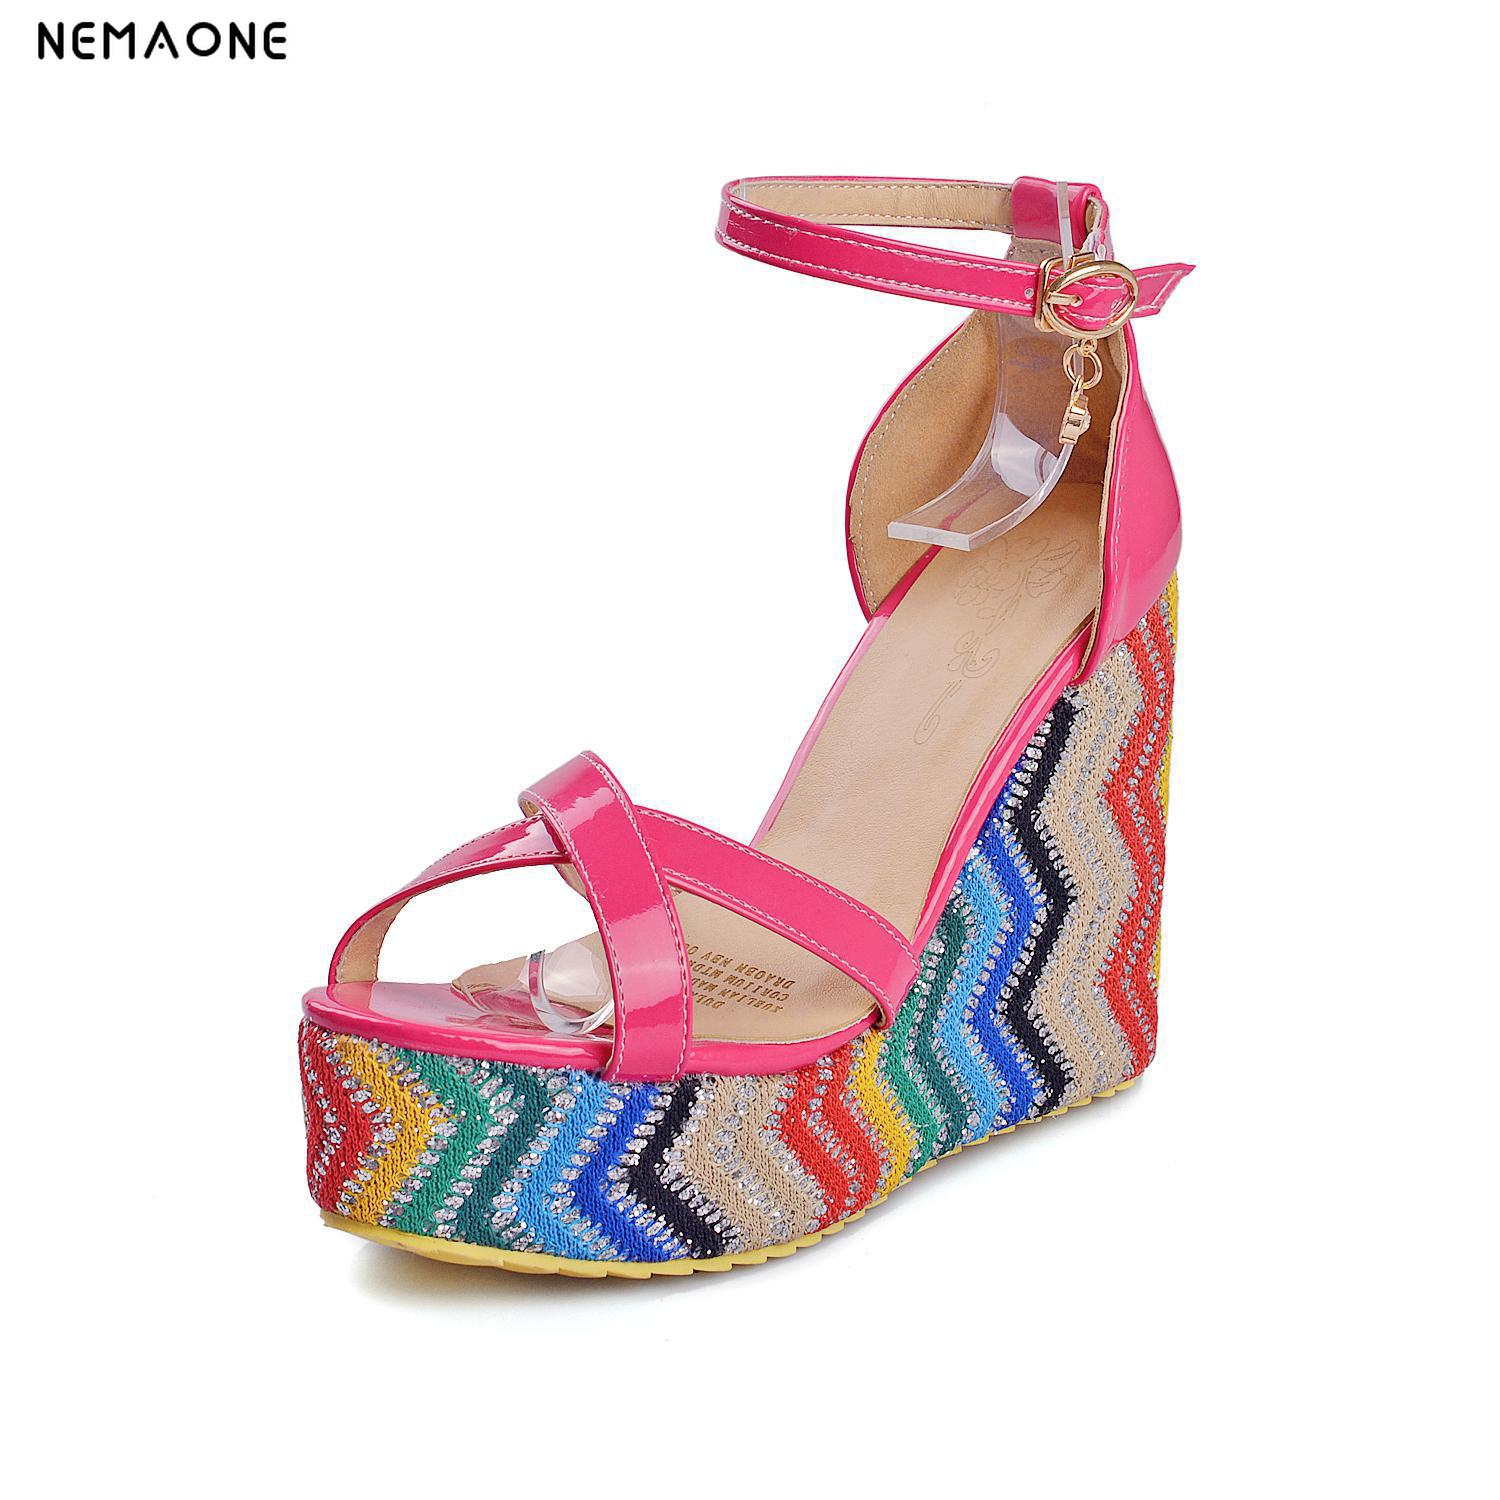 2017 New National style women sandals wedges heel sandal woman rainbow colors women shoes casual summer shoes woman xiaying smile summer new woman sandals casual fashion shoes women zip fringe flats cover heel consice style rubber student shoes